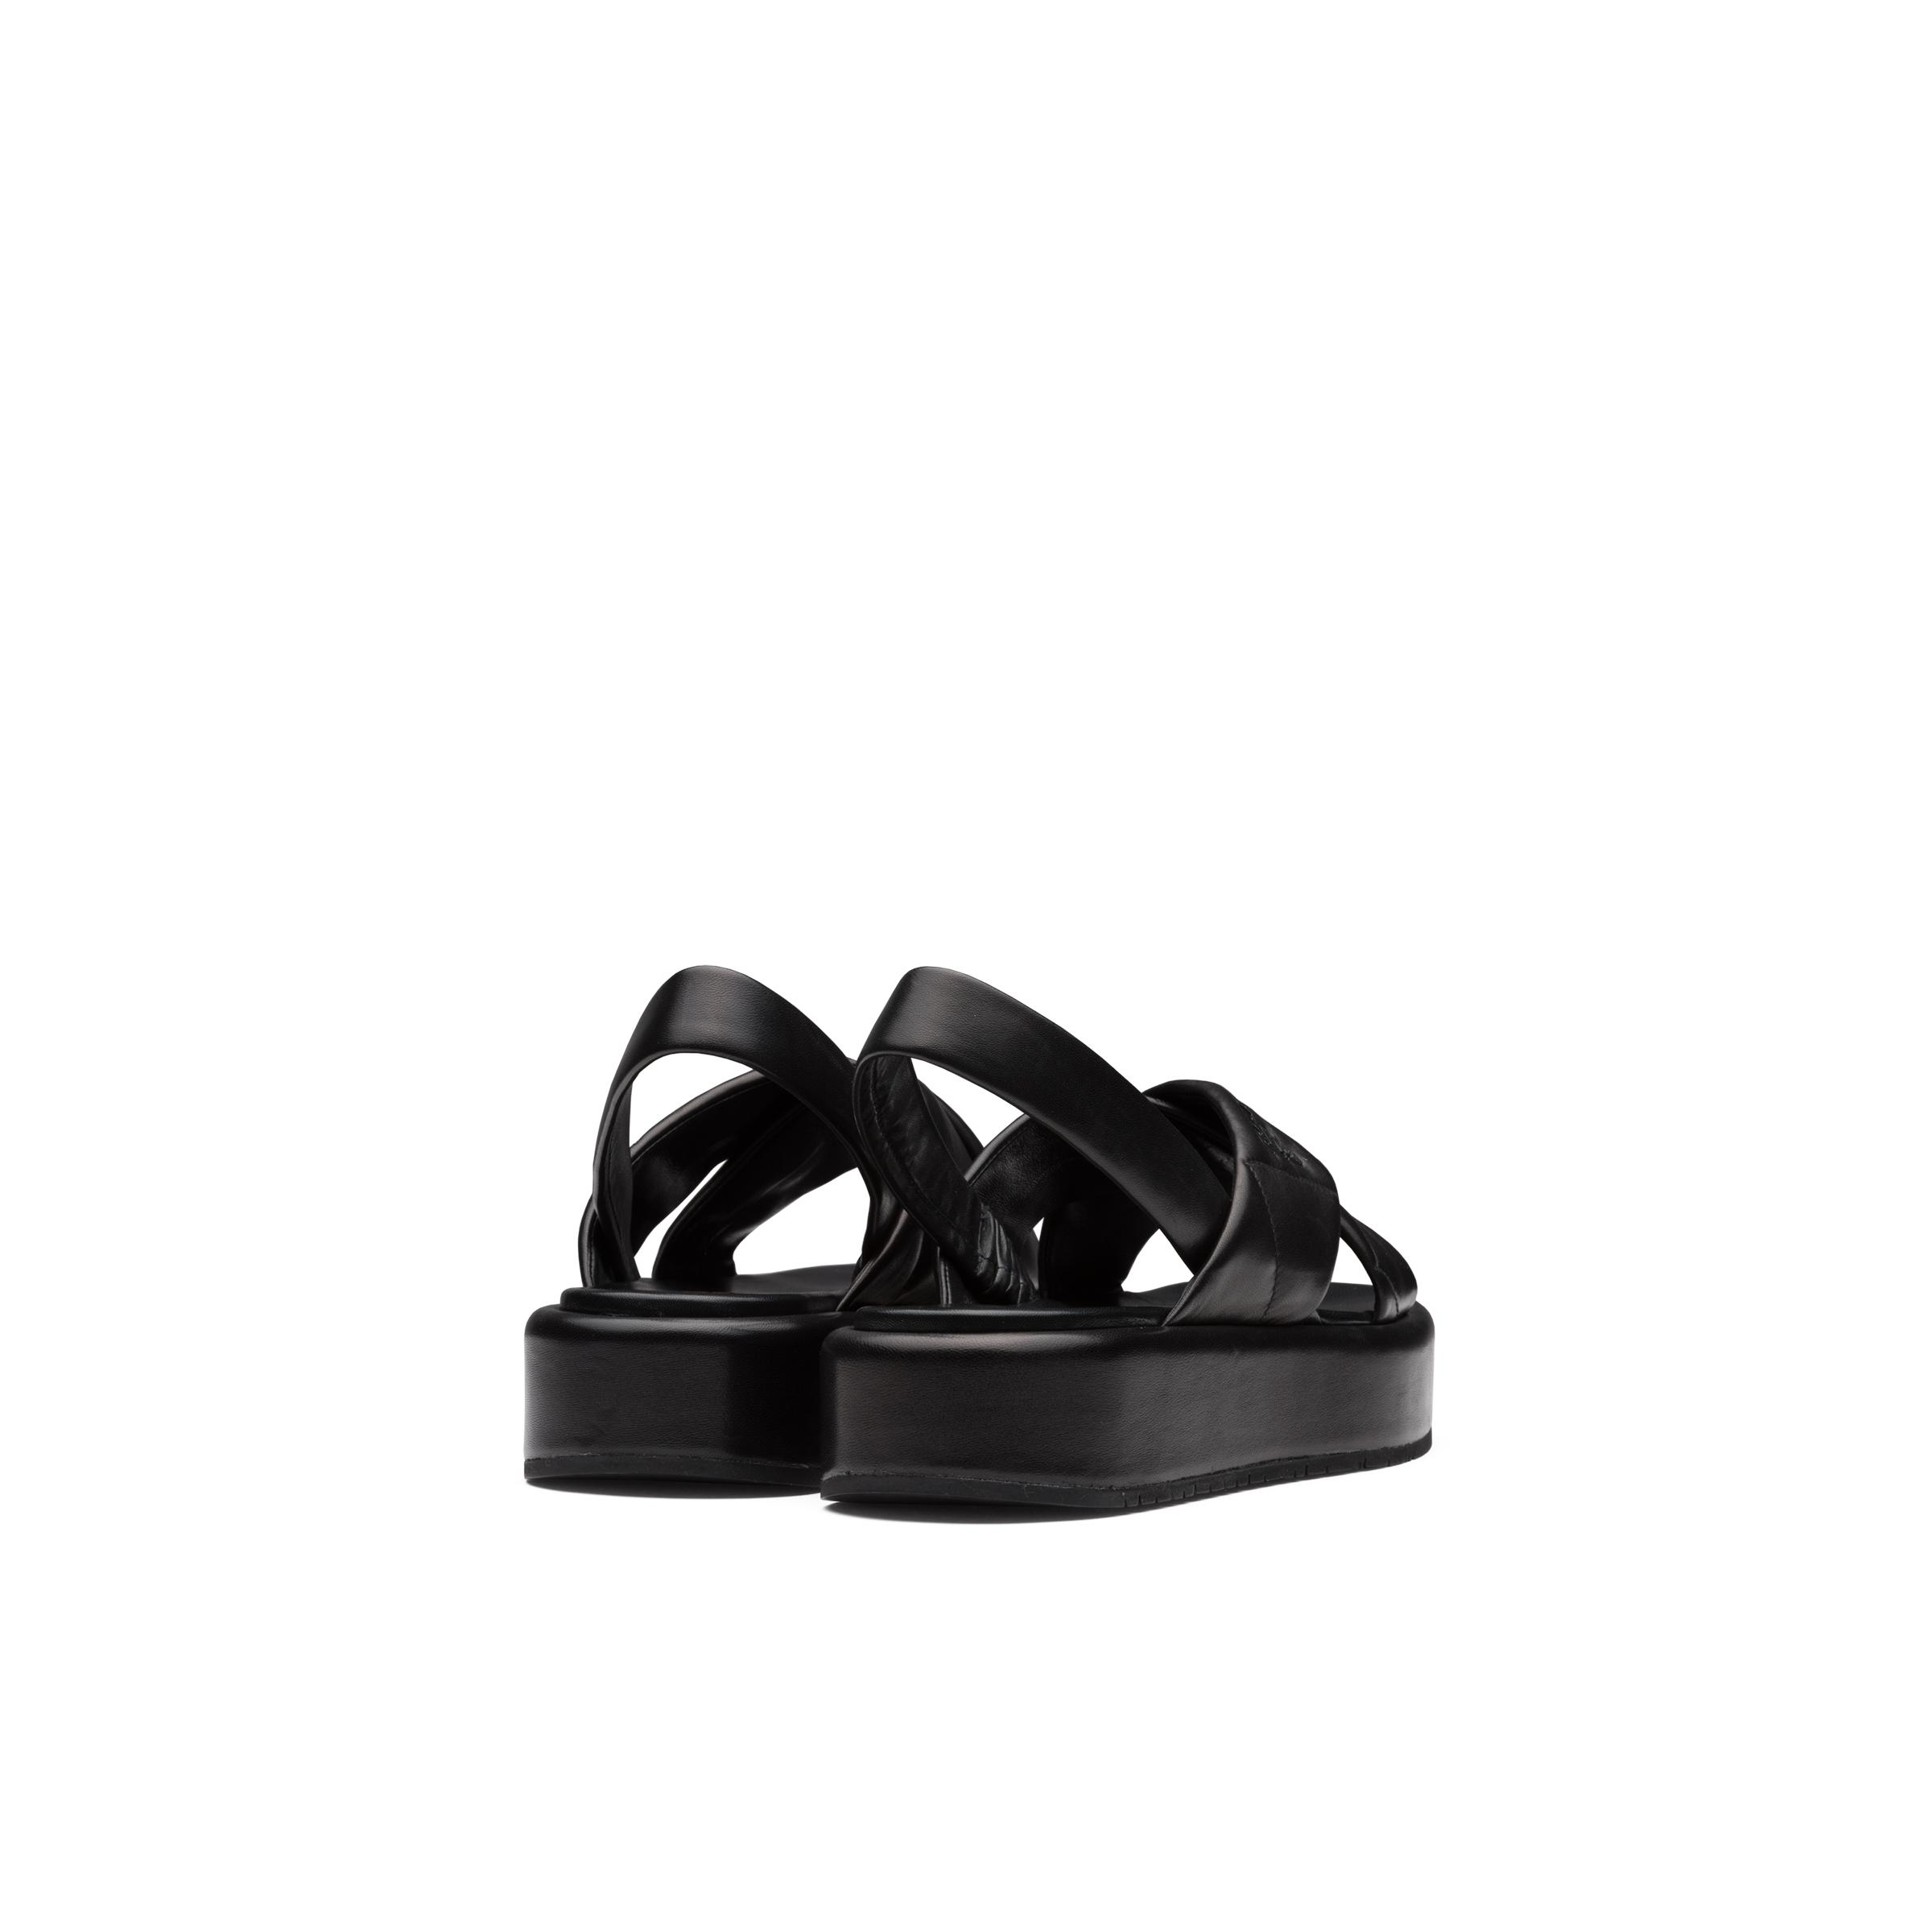 Quilted Nappa Leather Flatform Sandals Women Black 3